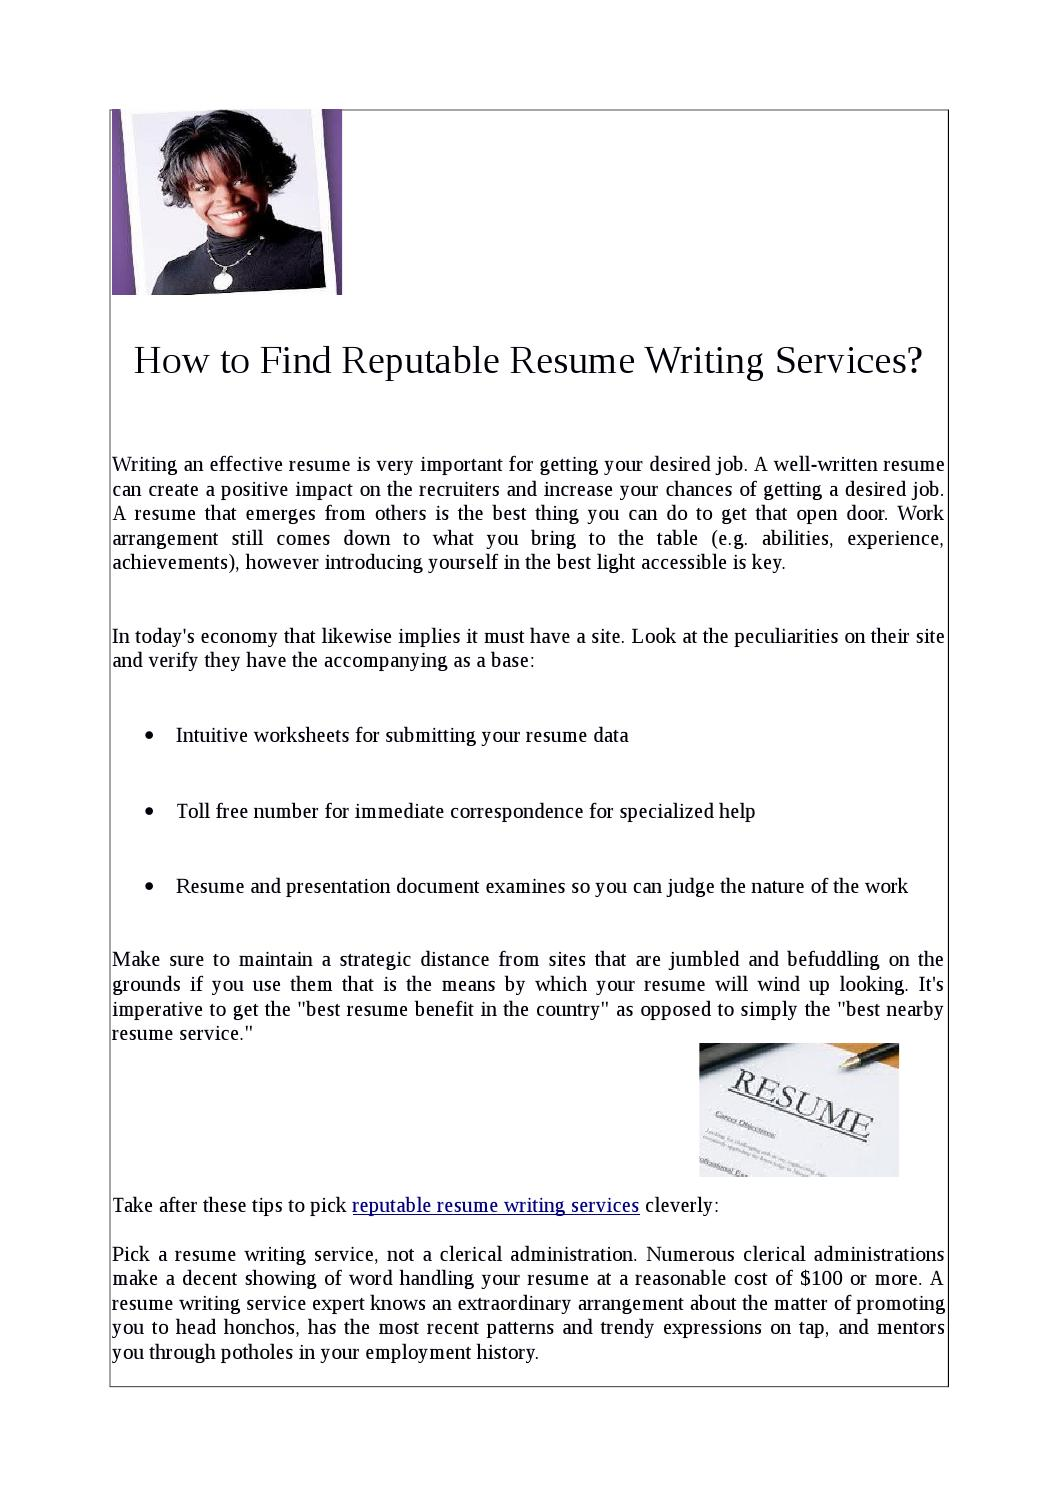 reputable resume writing services by a perfect resume